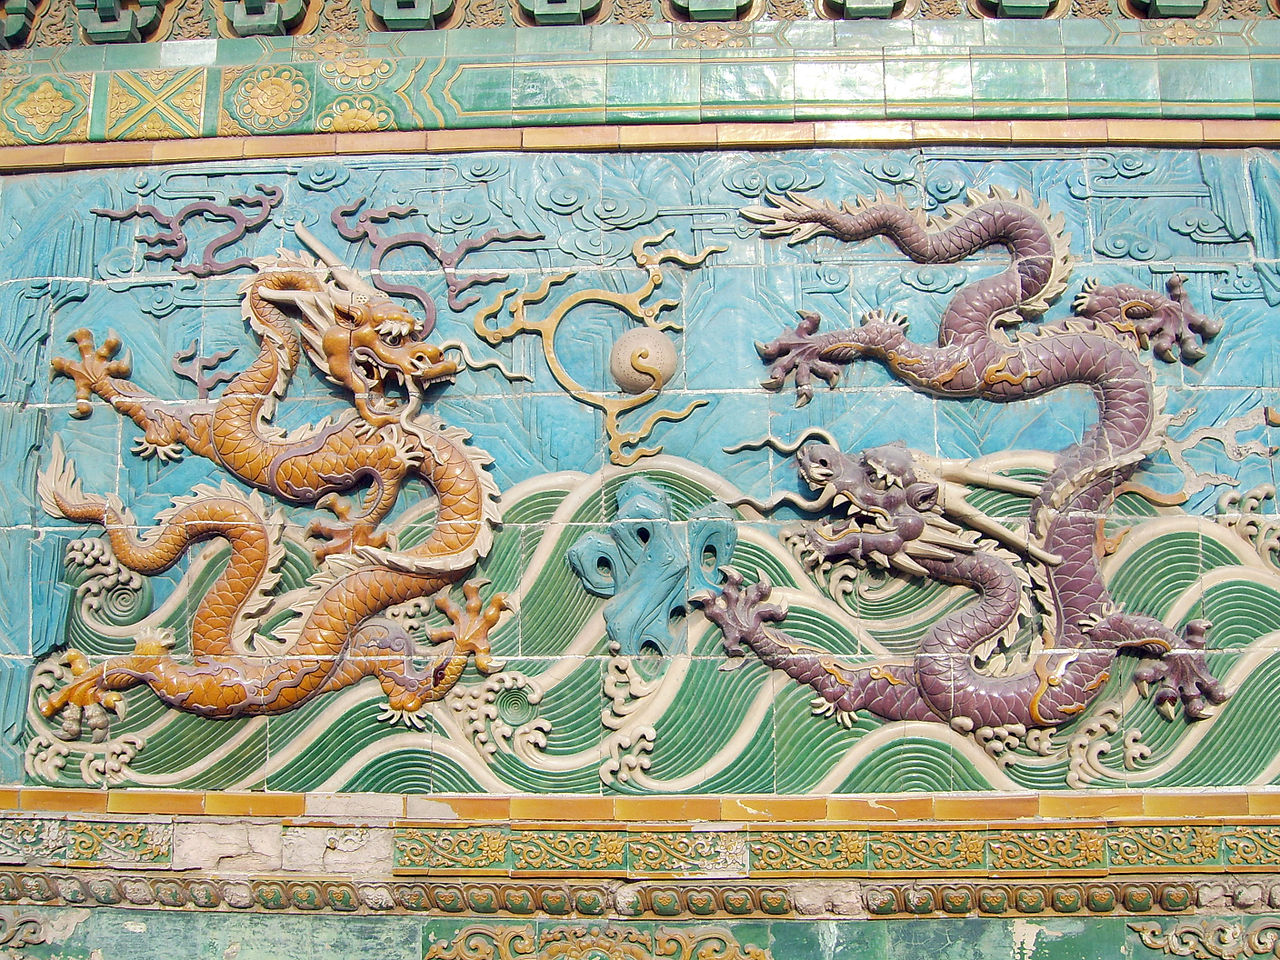 Two dragons playfully fighting over a jewel 二龍戲珠